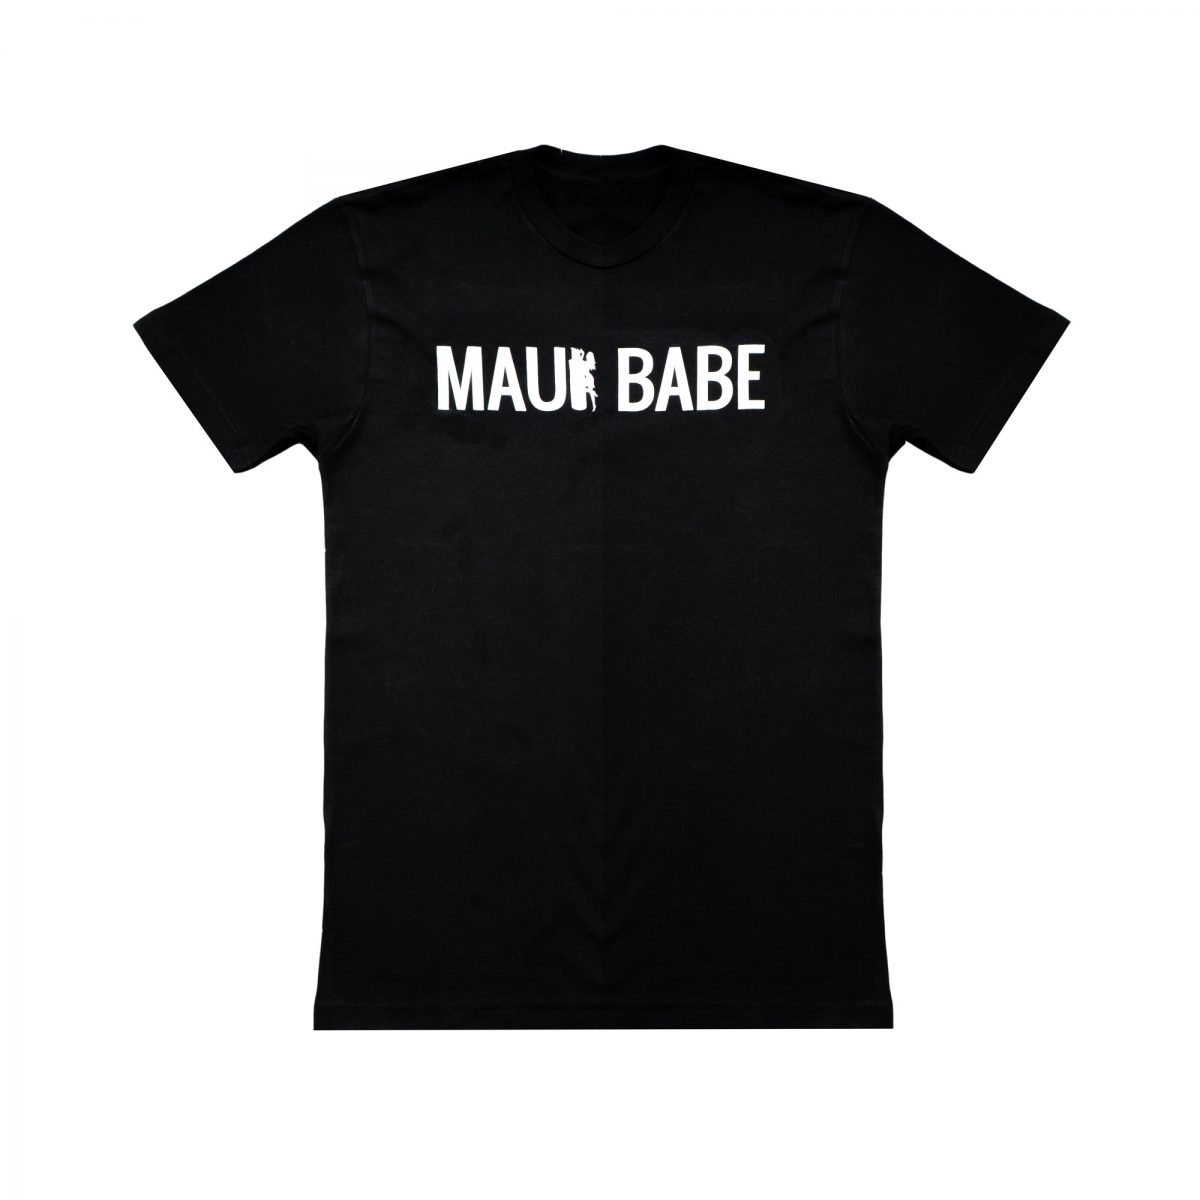 Men's MAUI BABE T-Shirt (Black)